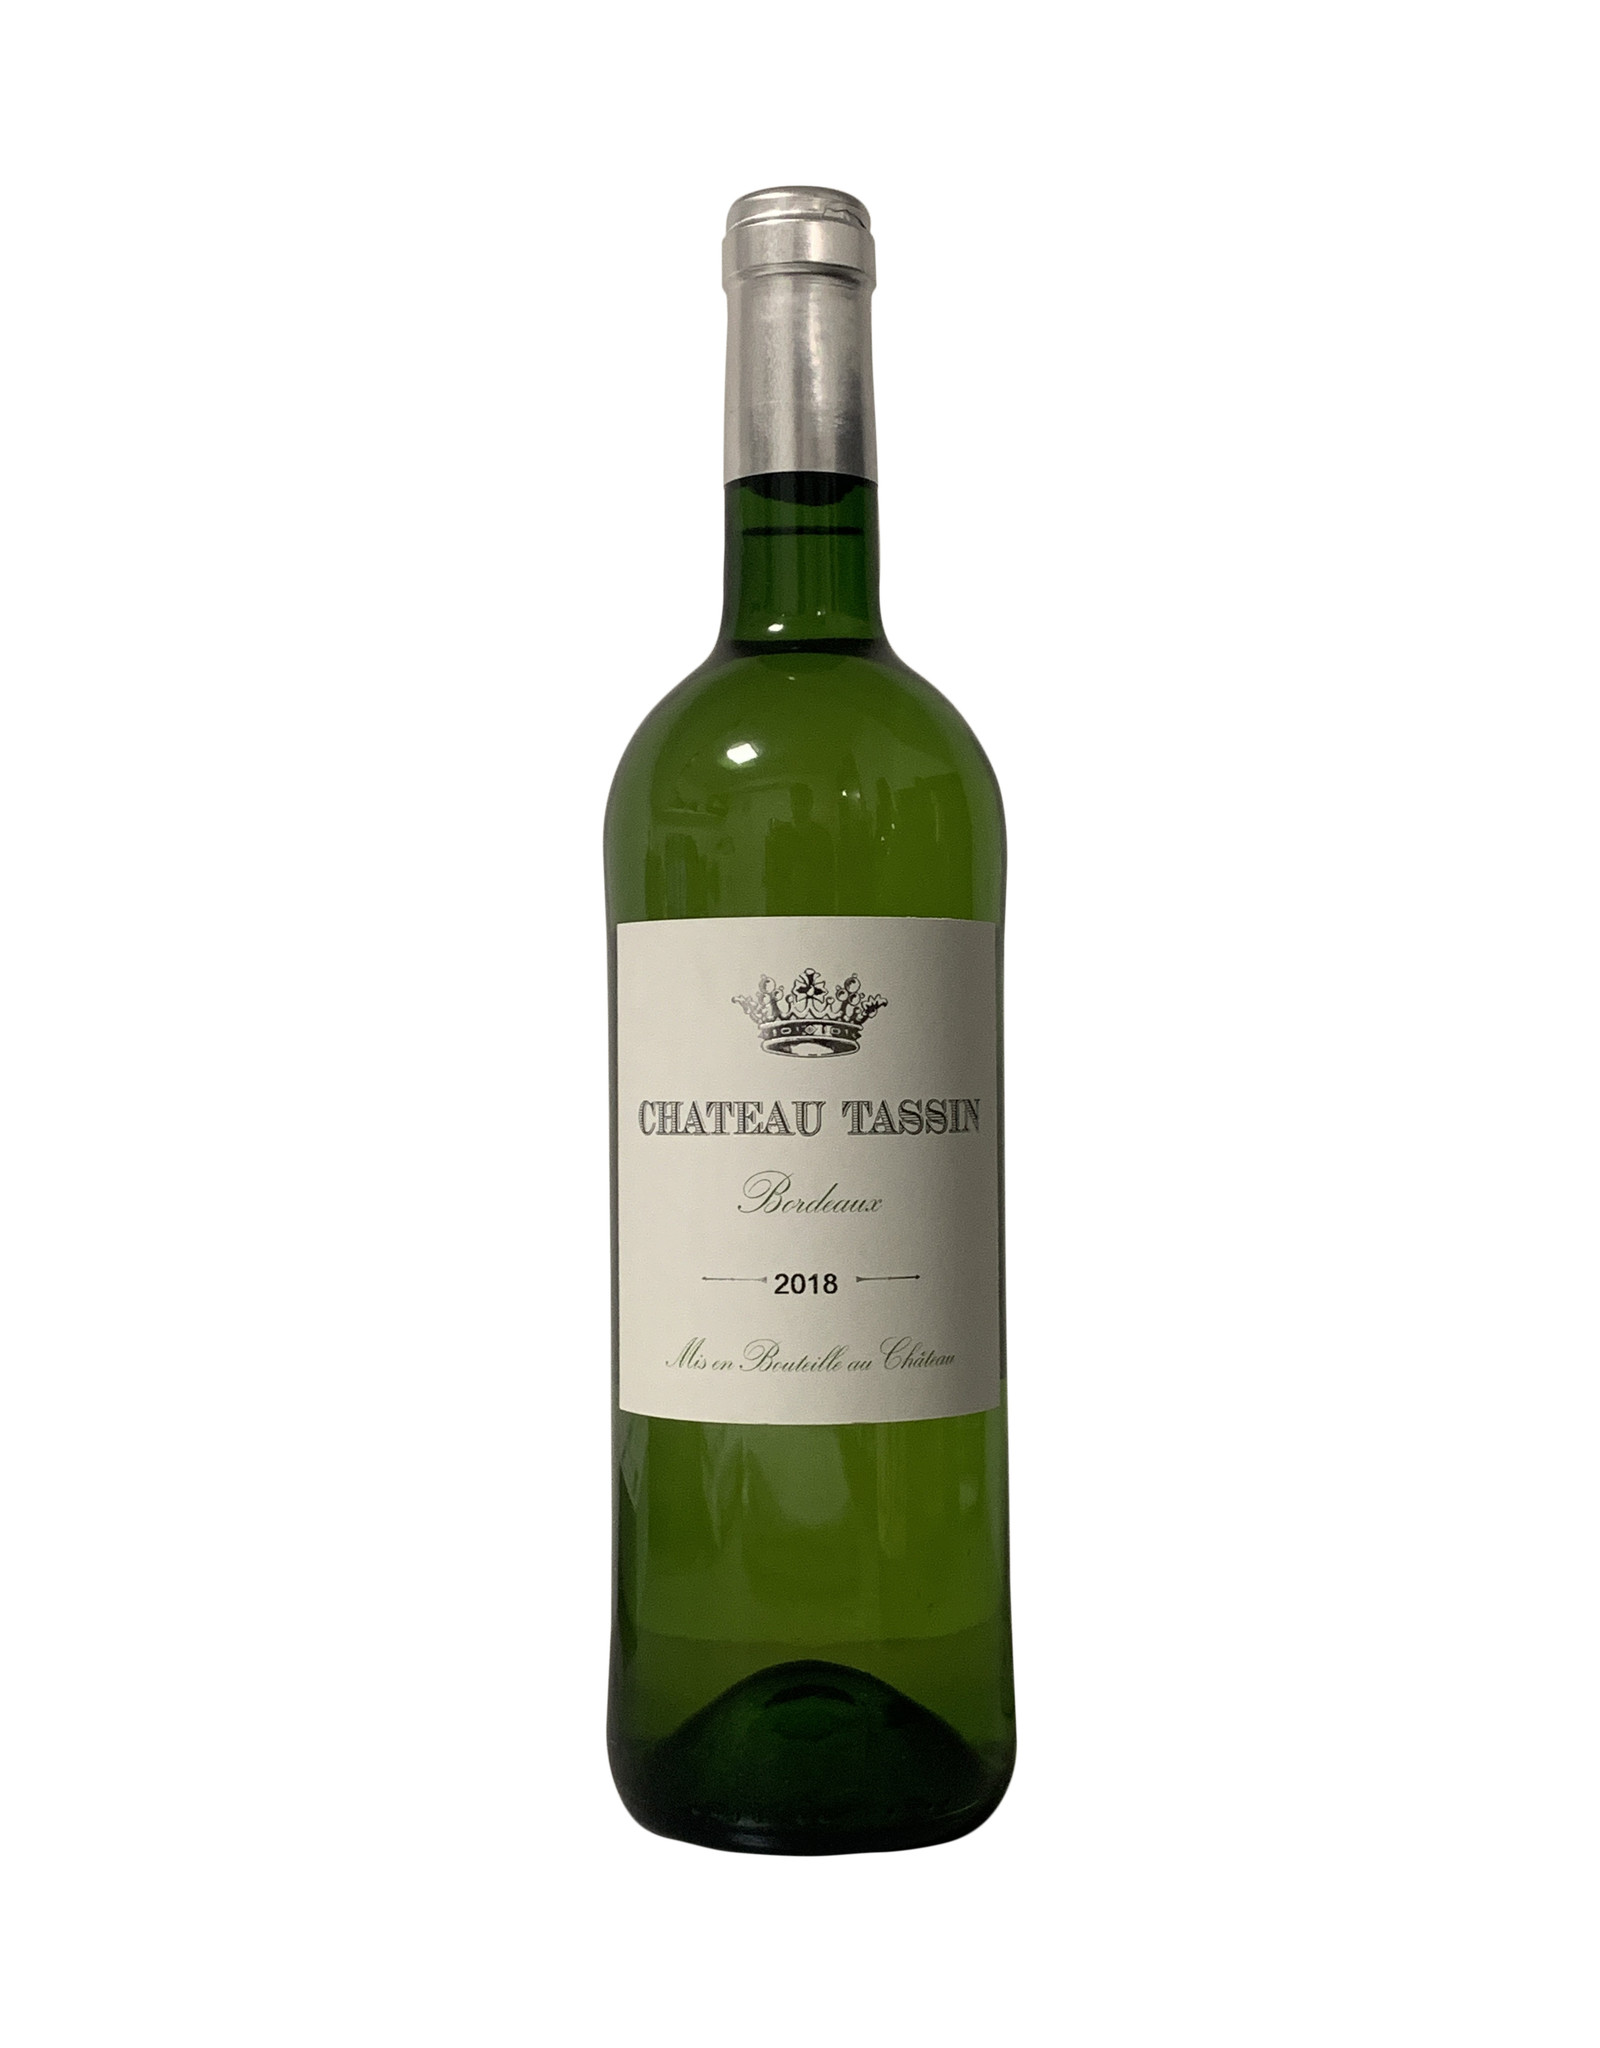 Chateau Tassin Chateau Tassin Bordeaux Blanc 2018, Bordeaux, France (750mL)